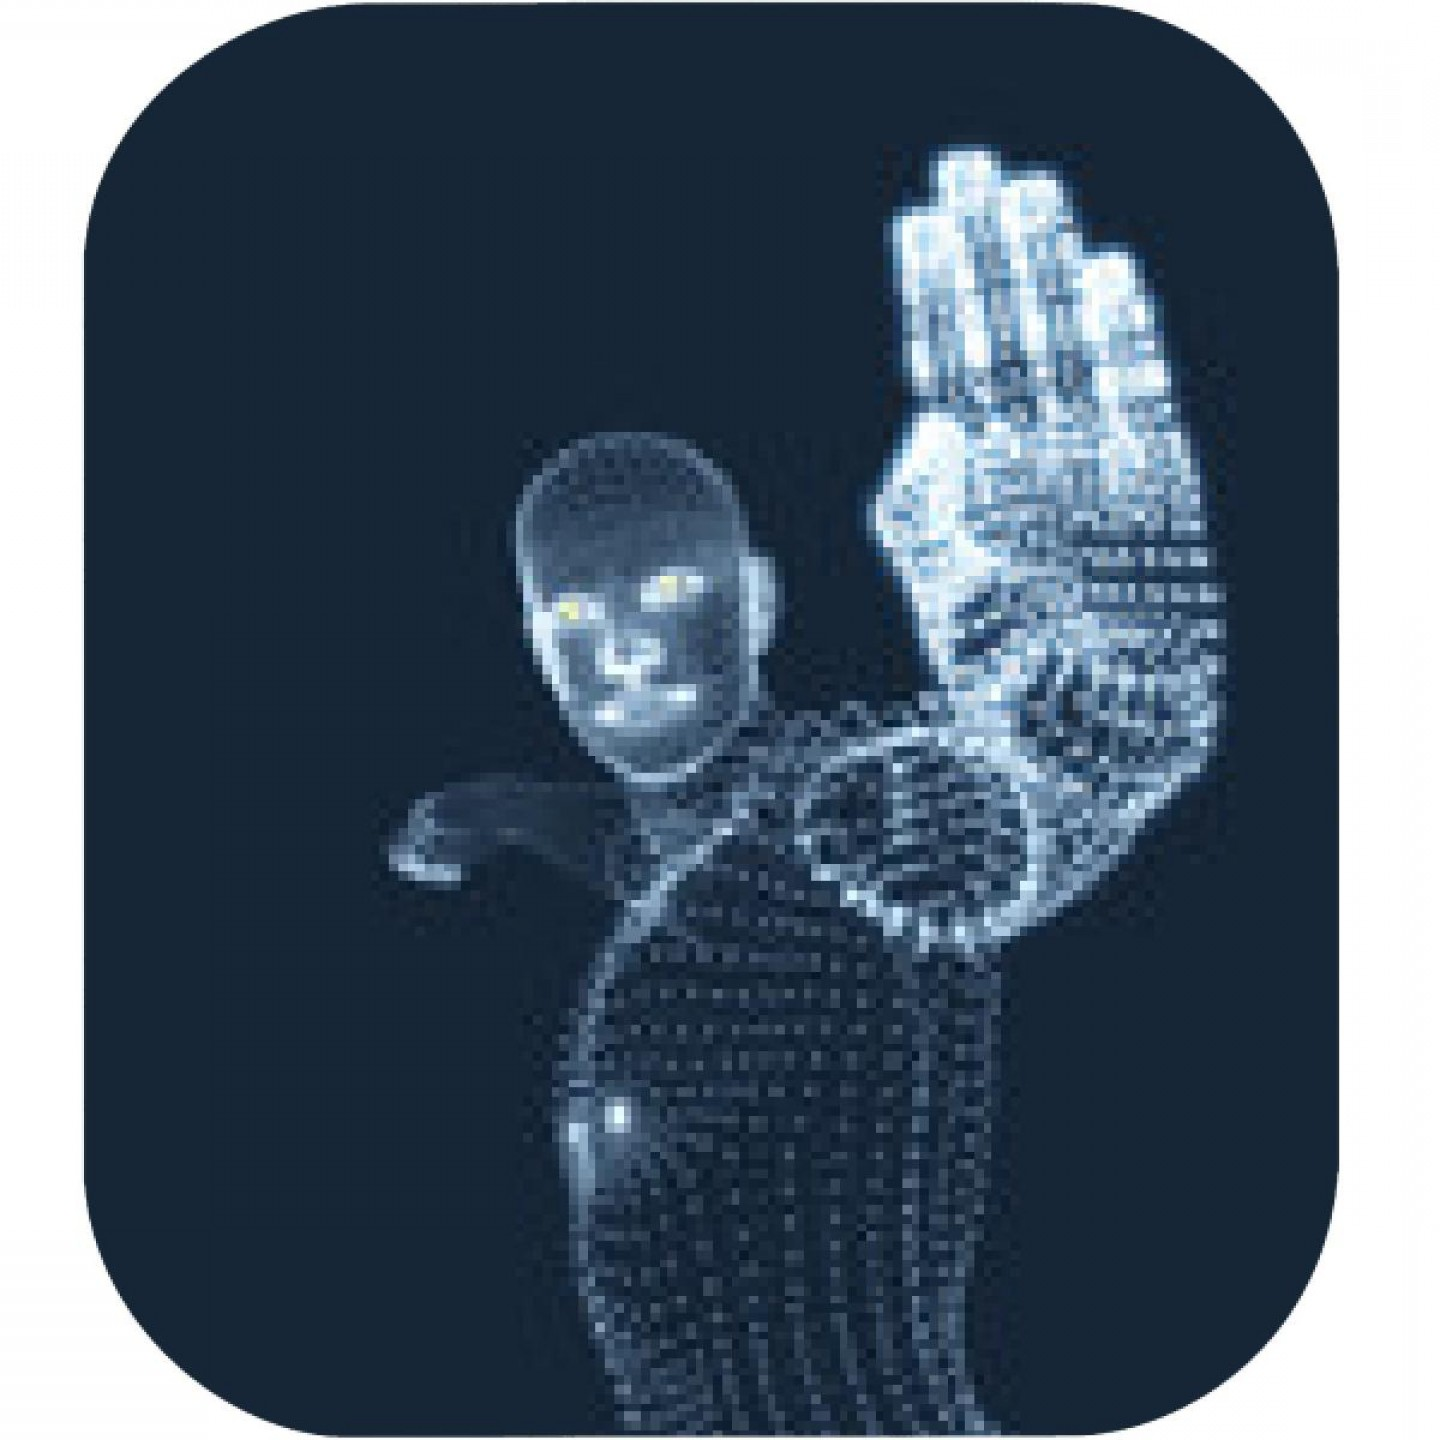 Hand Stop Vector Teal: Vector Man With Hand Up To Stop Human Showing Stop Gesture D Model Of Man D Vector Illustration